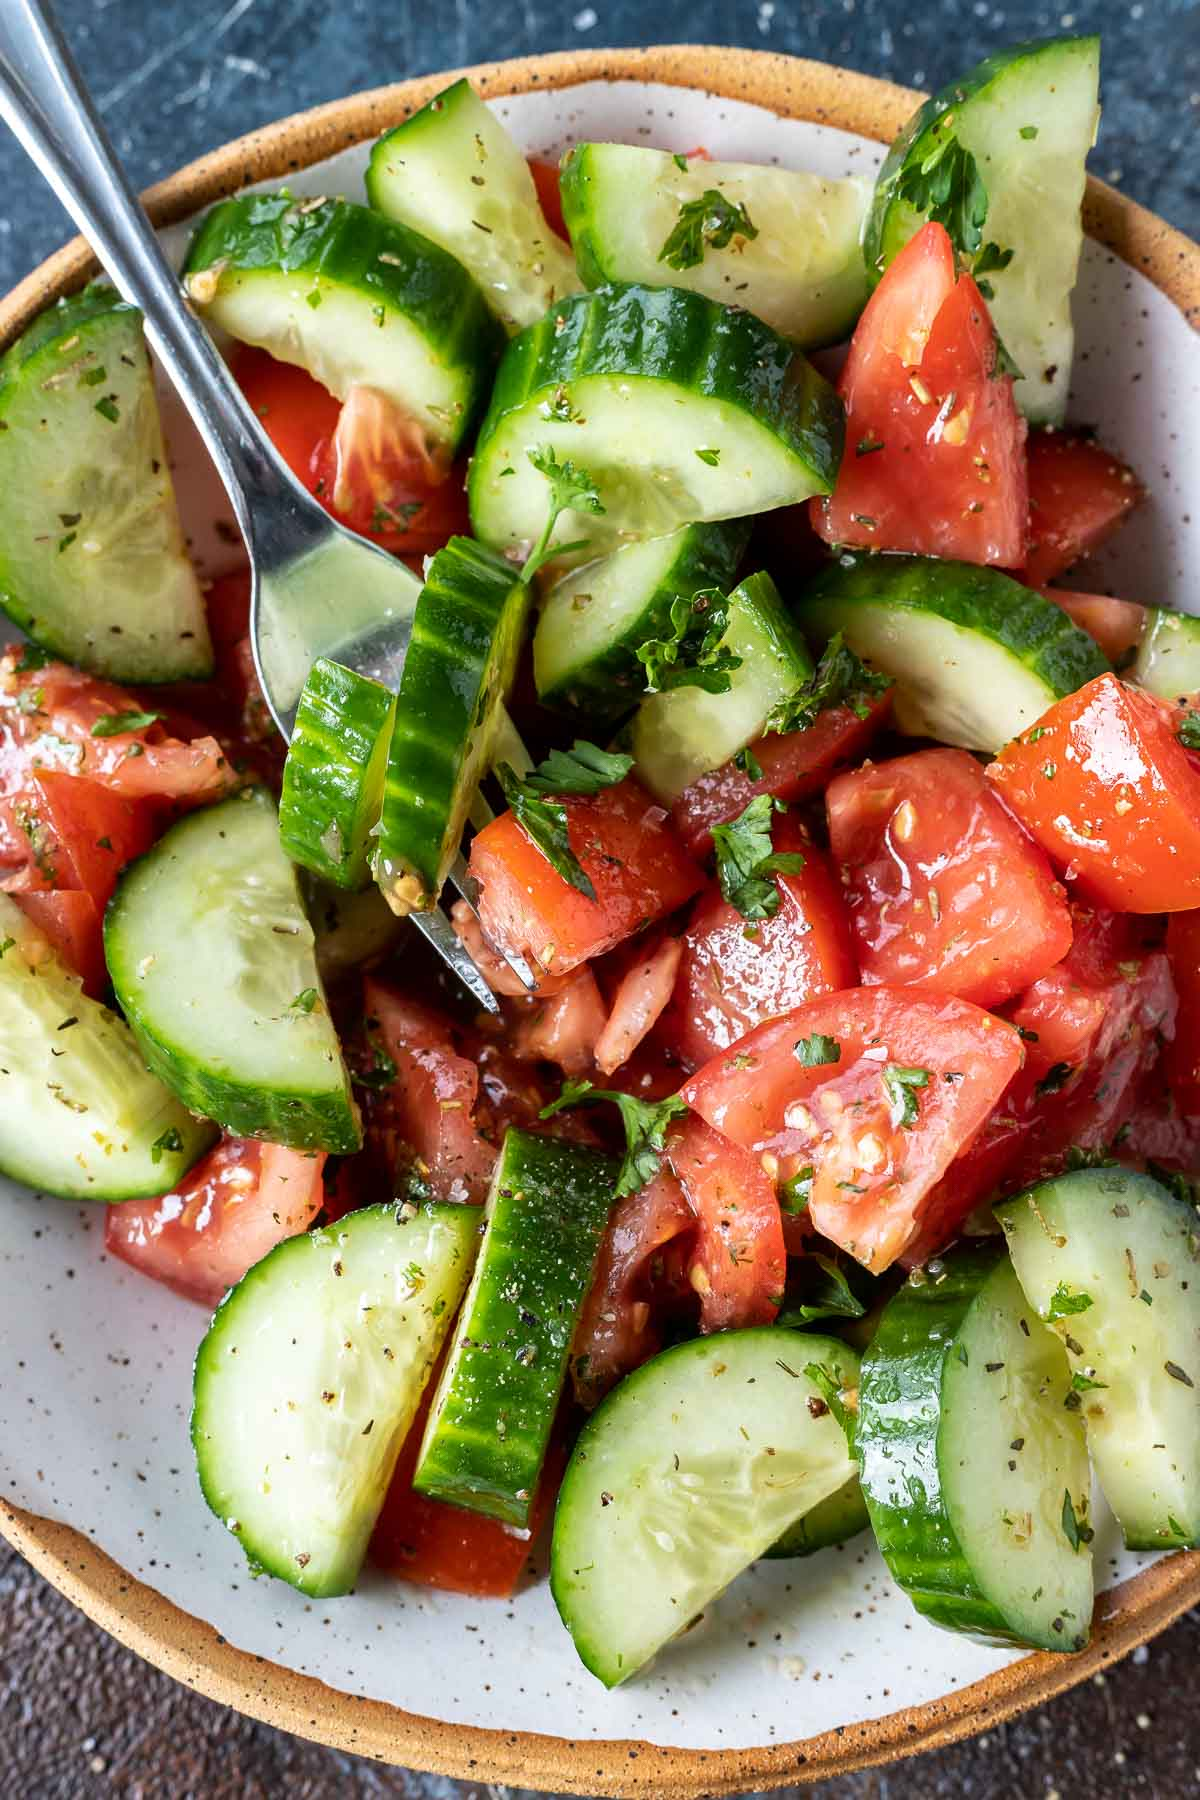 tomatoes and cucumber salad served in bowl